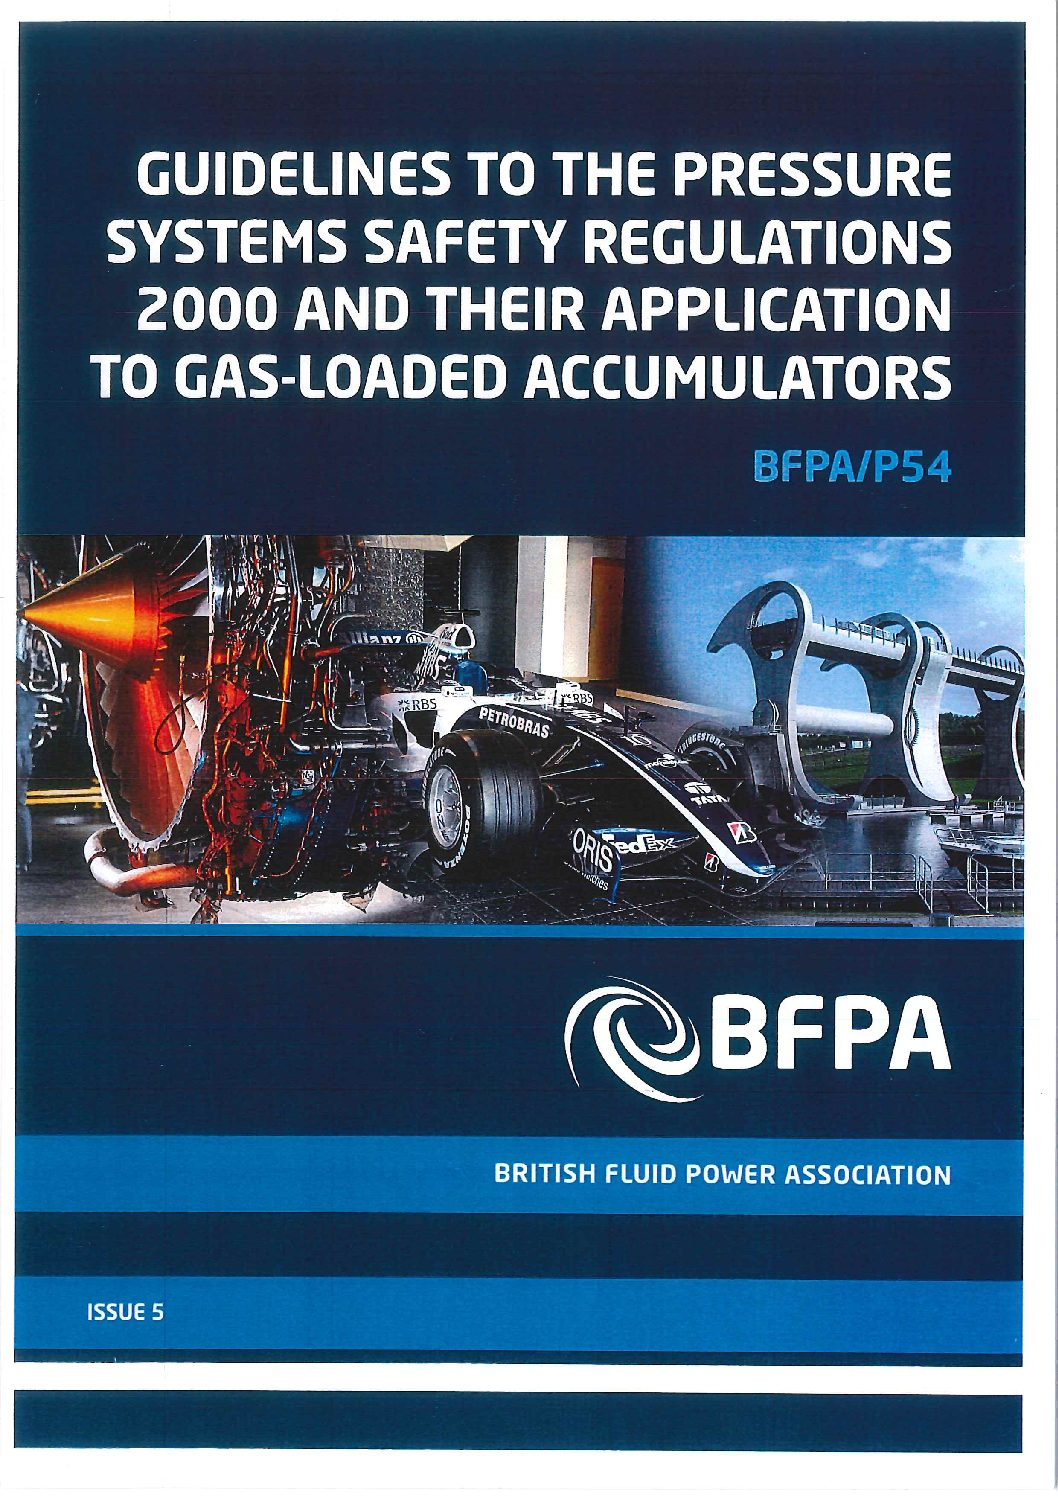 Guidelines to the Pressure Systems Safety Regulations 2000 (PSSR) and their application to gas-loaded accumulators